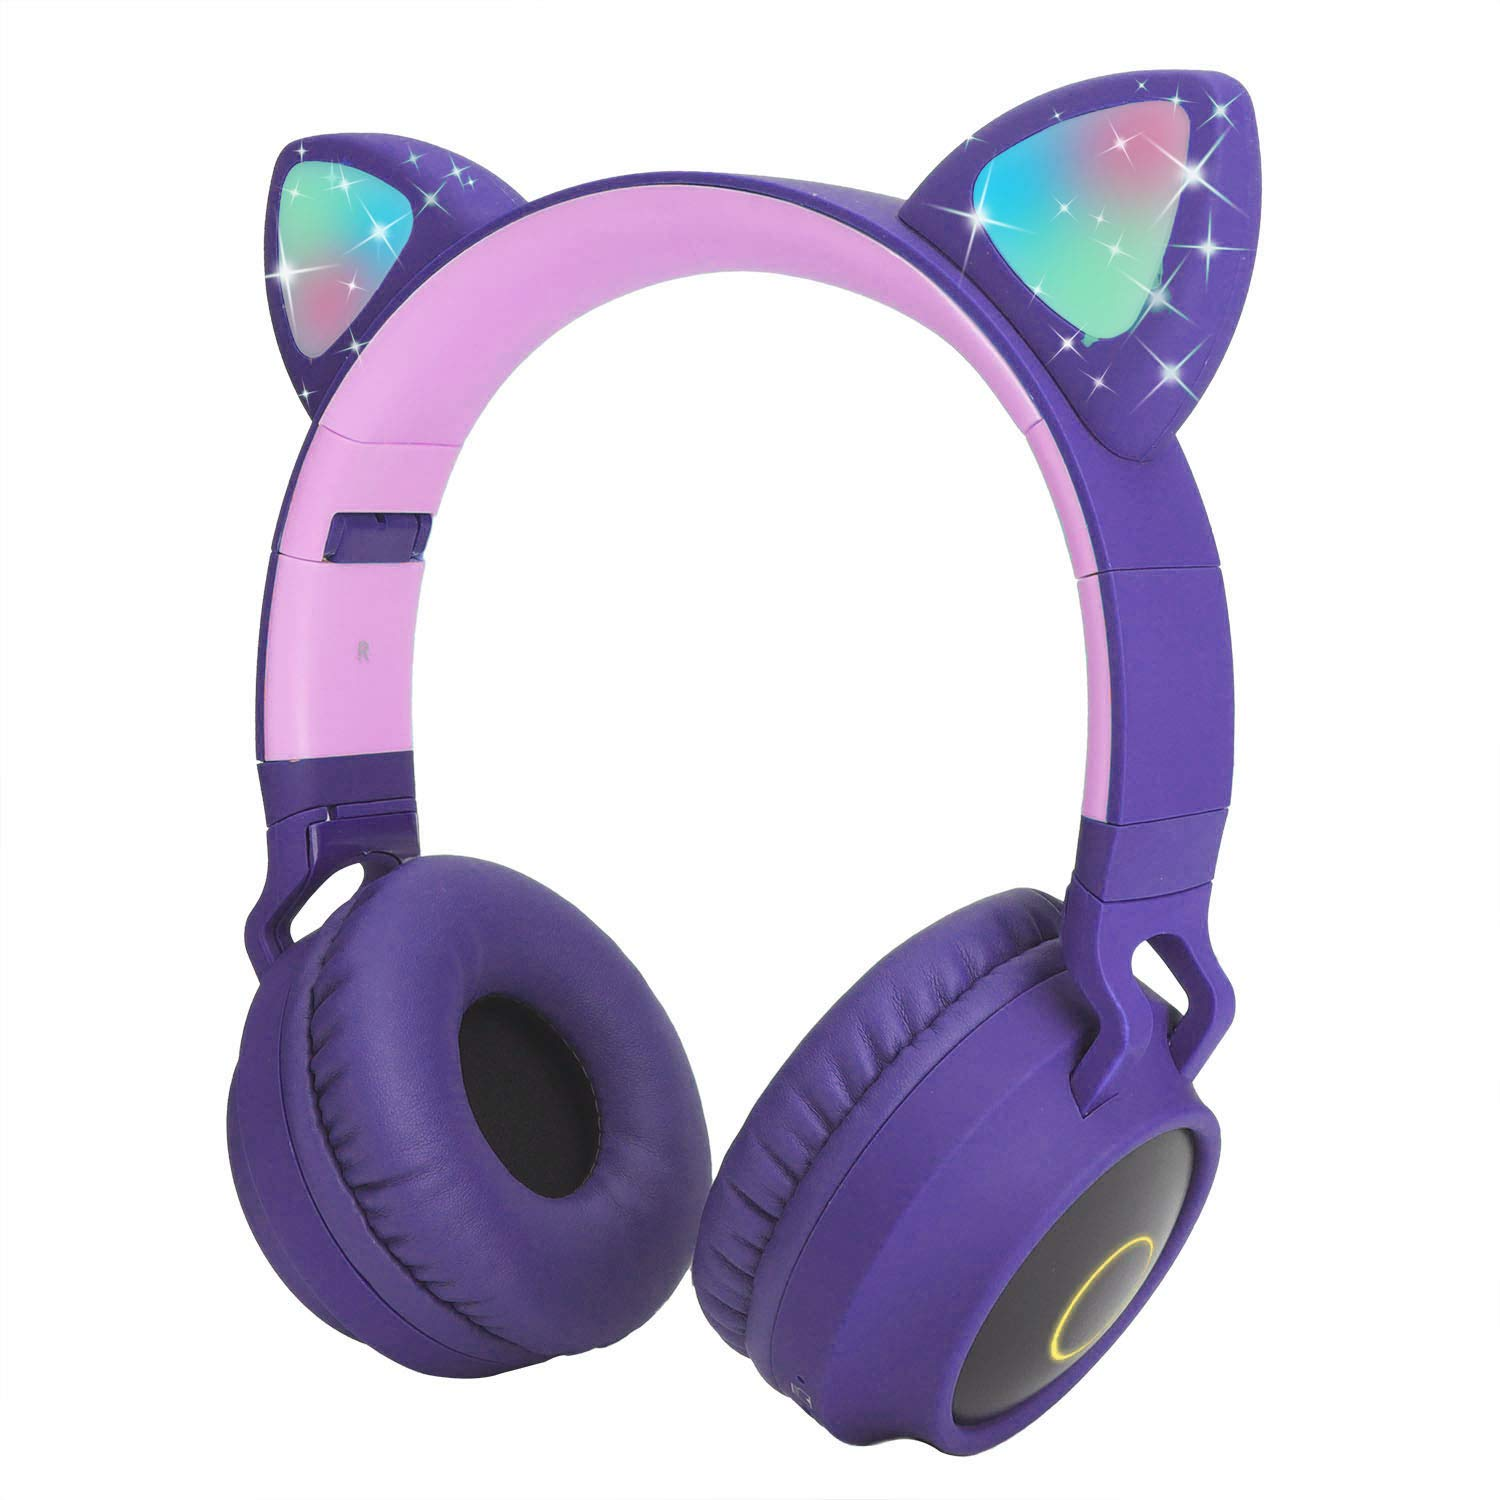 Kids Wireless Headphones Cat Ear Bluetooth Headphones with Flashing Led Light, SD Card Slot, FM,3.5 mm Audio Jack Wired Kids On Ear Headphones for Boys Girls Adults Purple